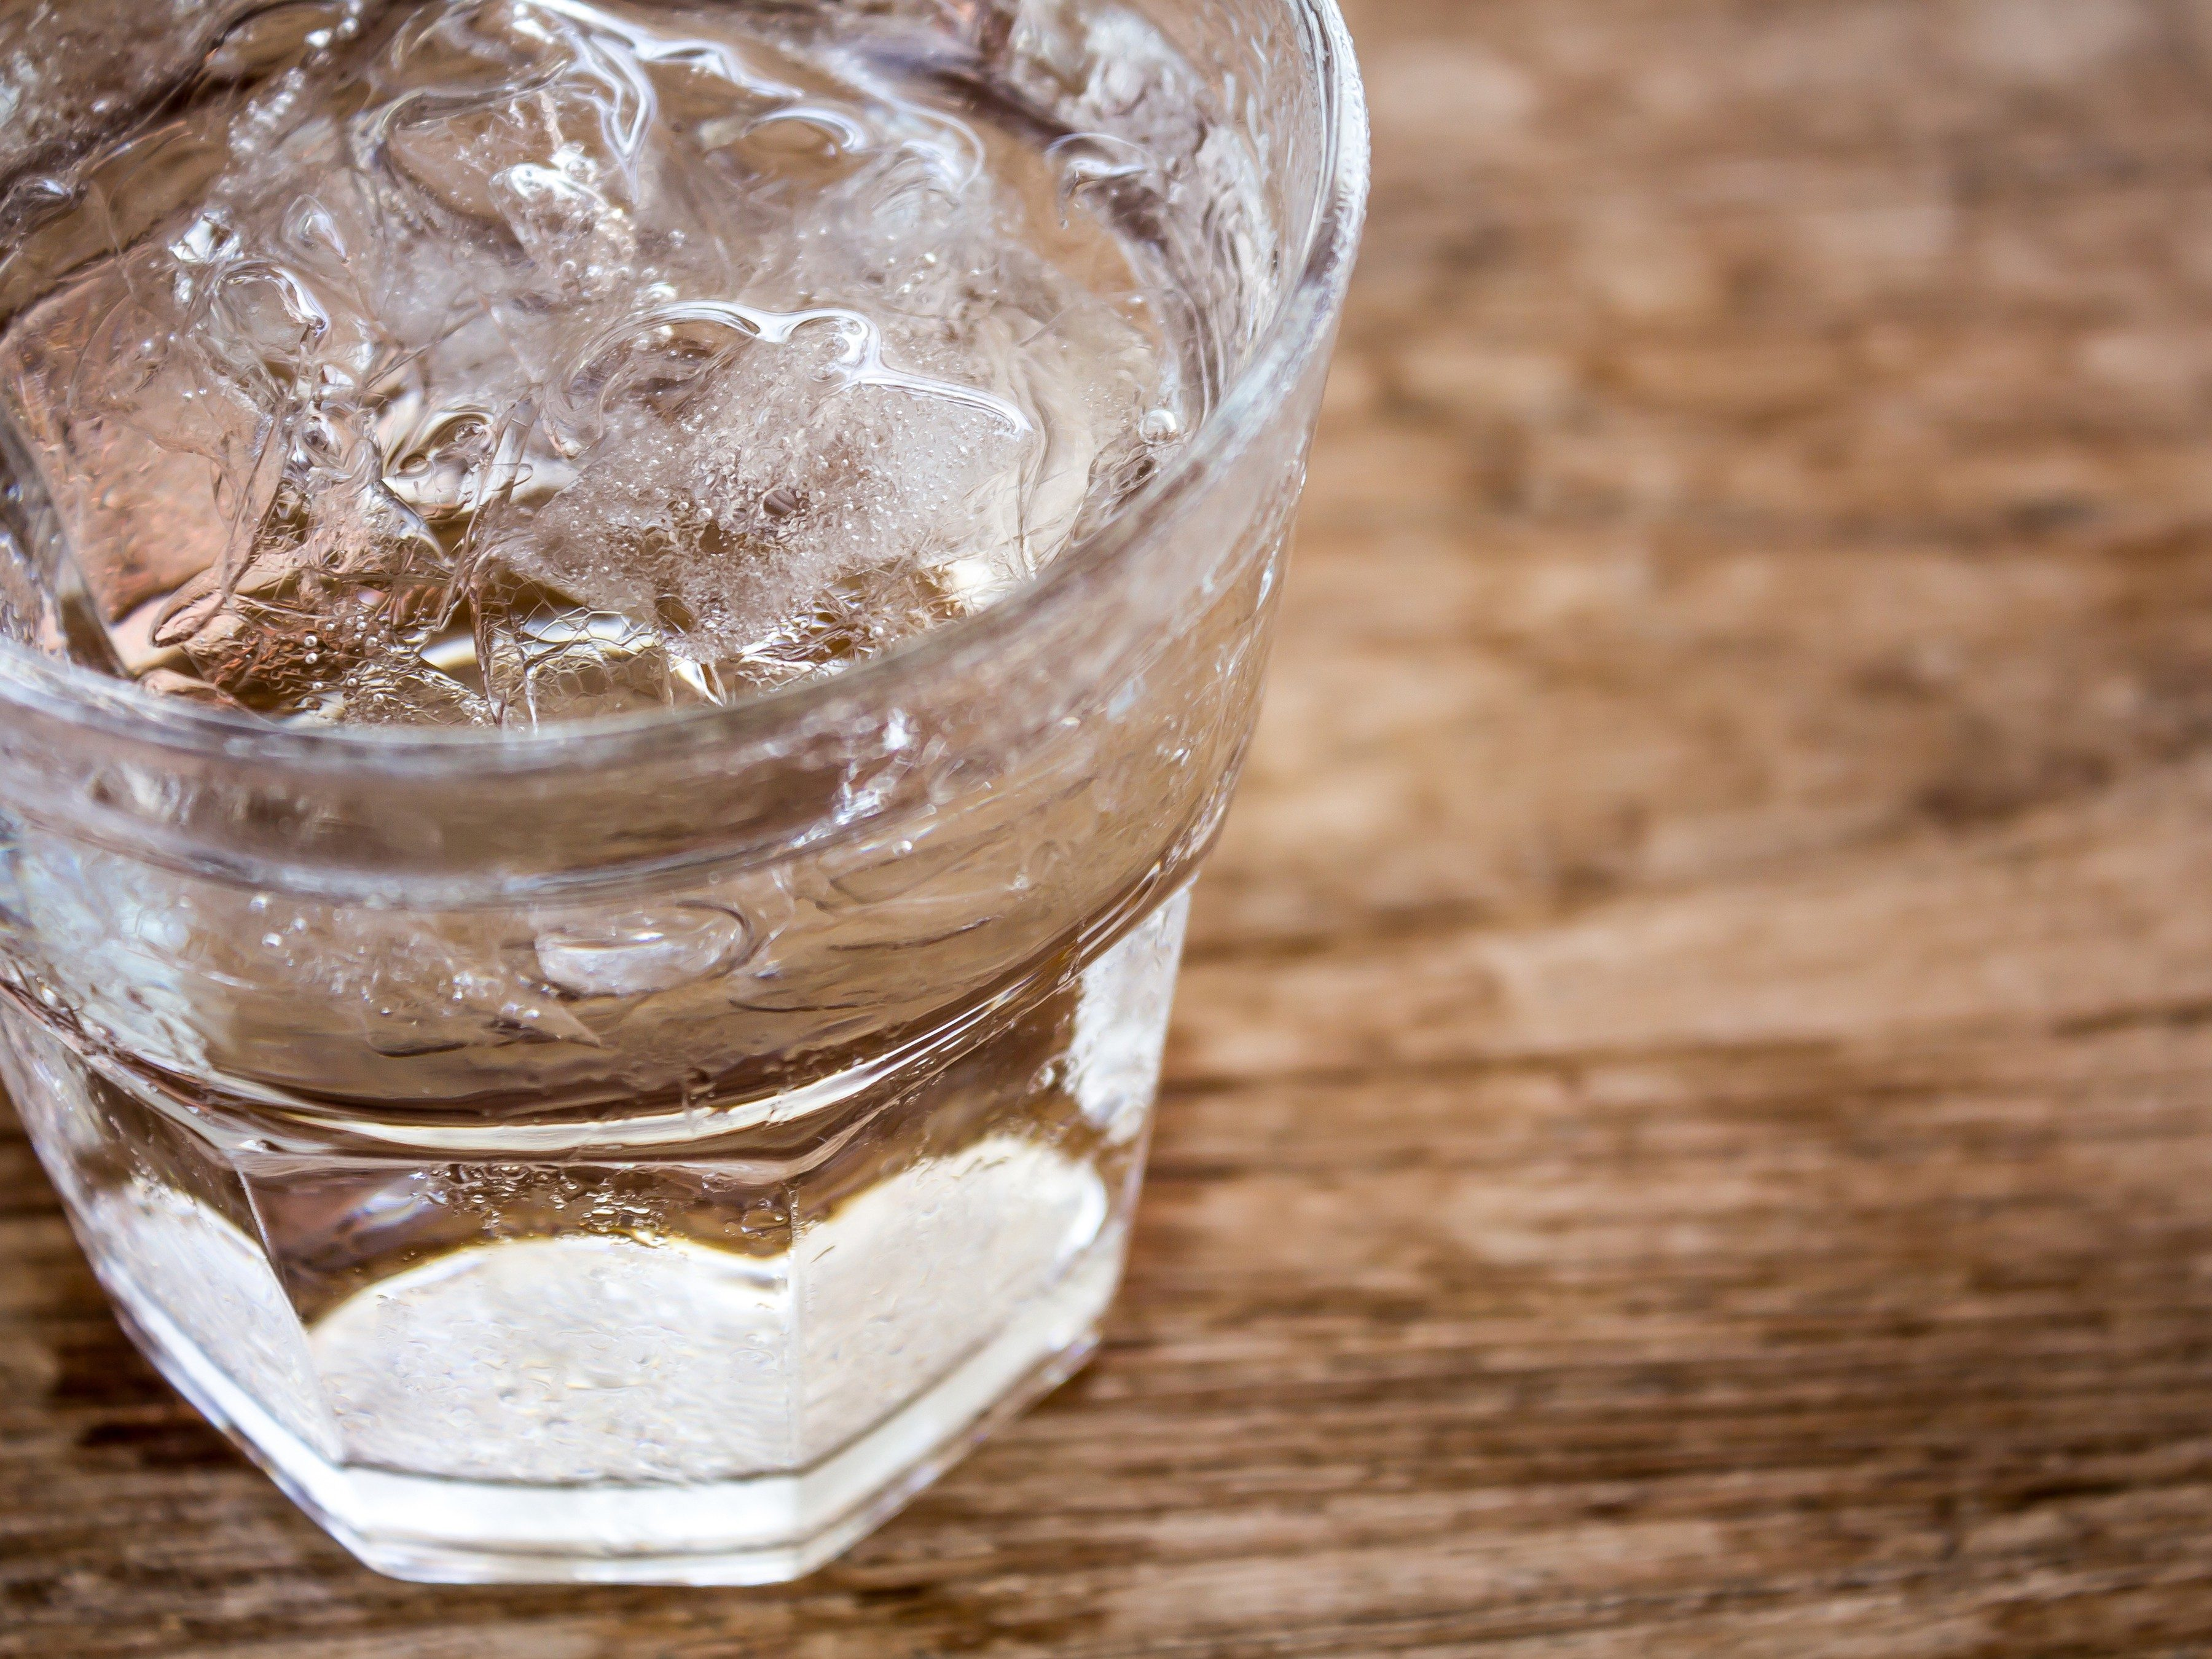 How to get rid of hiccups - Drink Some Water To Get Rid Of Hiccups